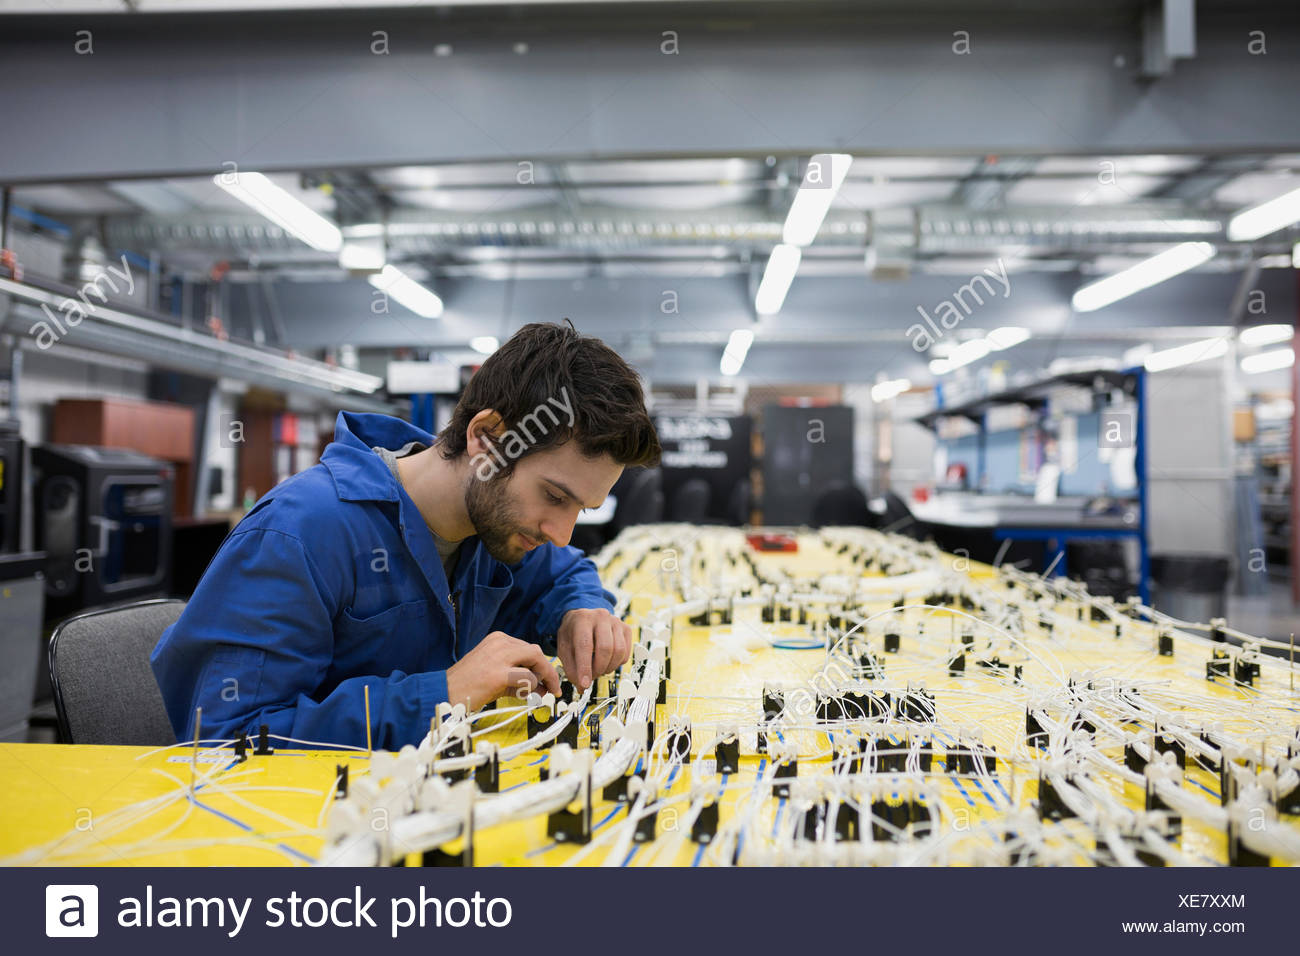 hight resolution of wiring harness stock photos wiring harness stock images alamy factory wiring harness replacement helicopter technician